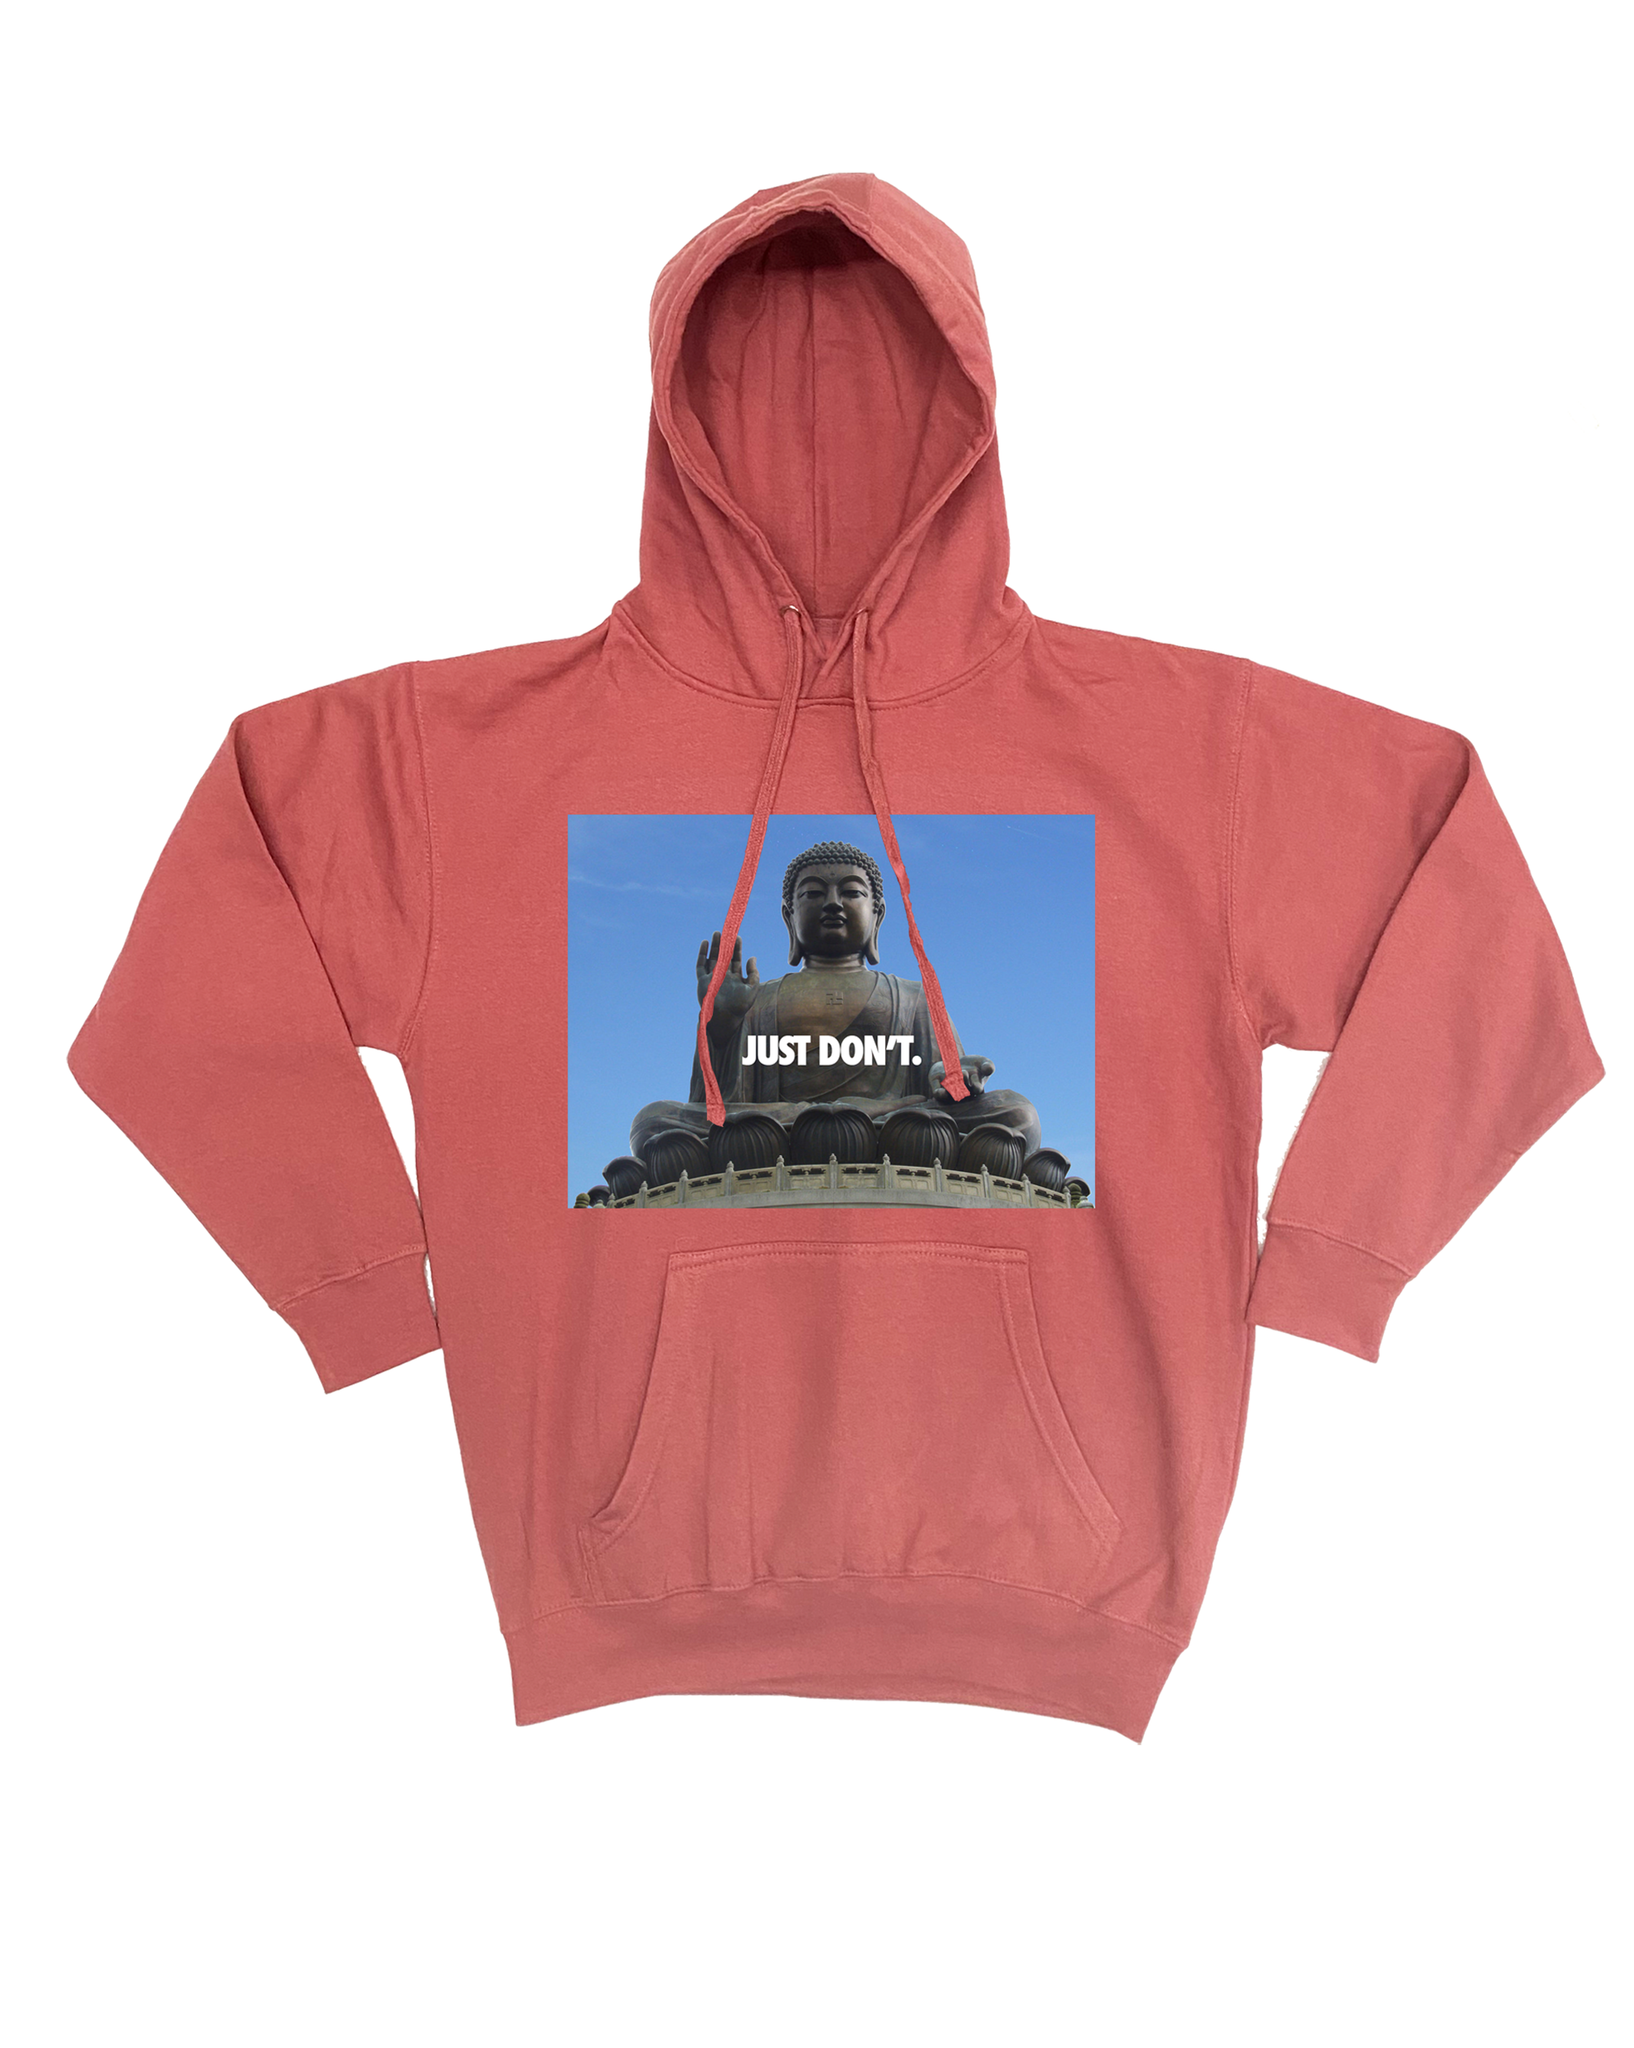 Just Don't Hoodie Premium Cotton